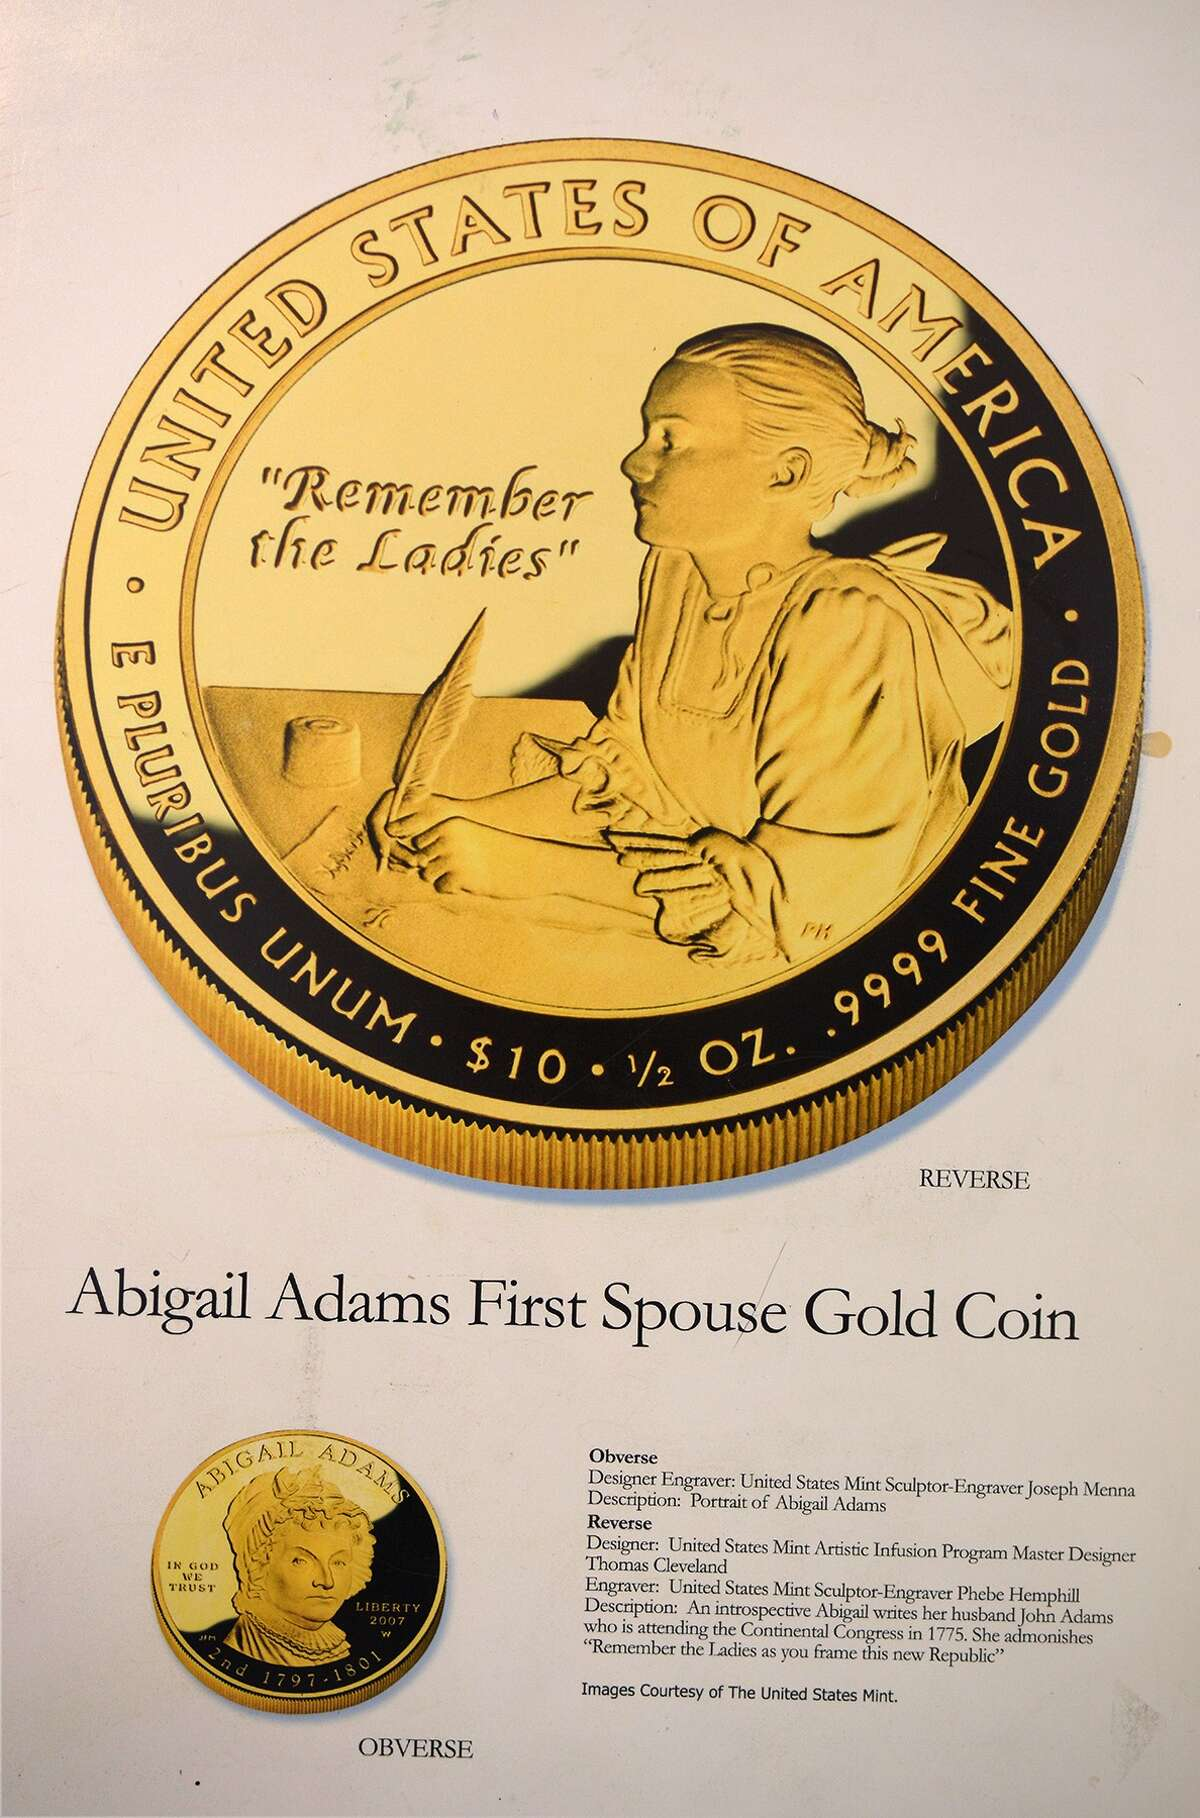 Thomas Cleveland helped design collectible coins such as this Abigail Adams piece for the U.S. Mint through the Artist Infusion Program.Thomas Cleveland helped design collectible coins such as this Abigail Adams piece for the U.S. Mint through the Artist Infusion Program.